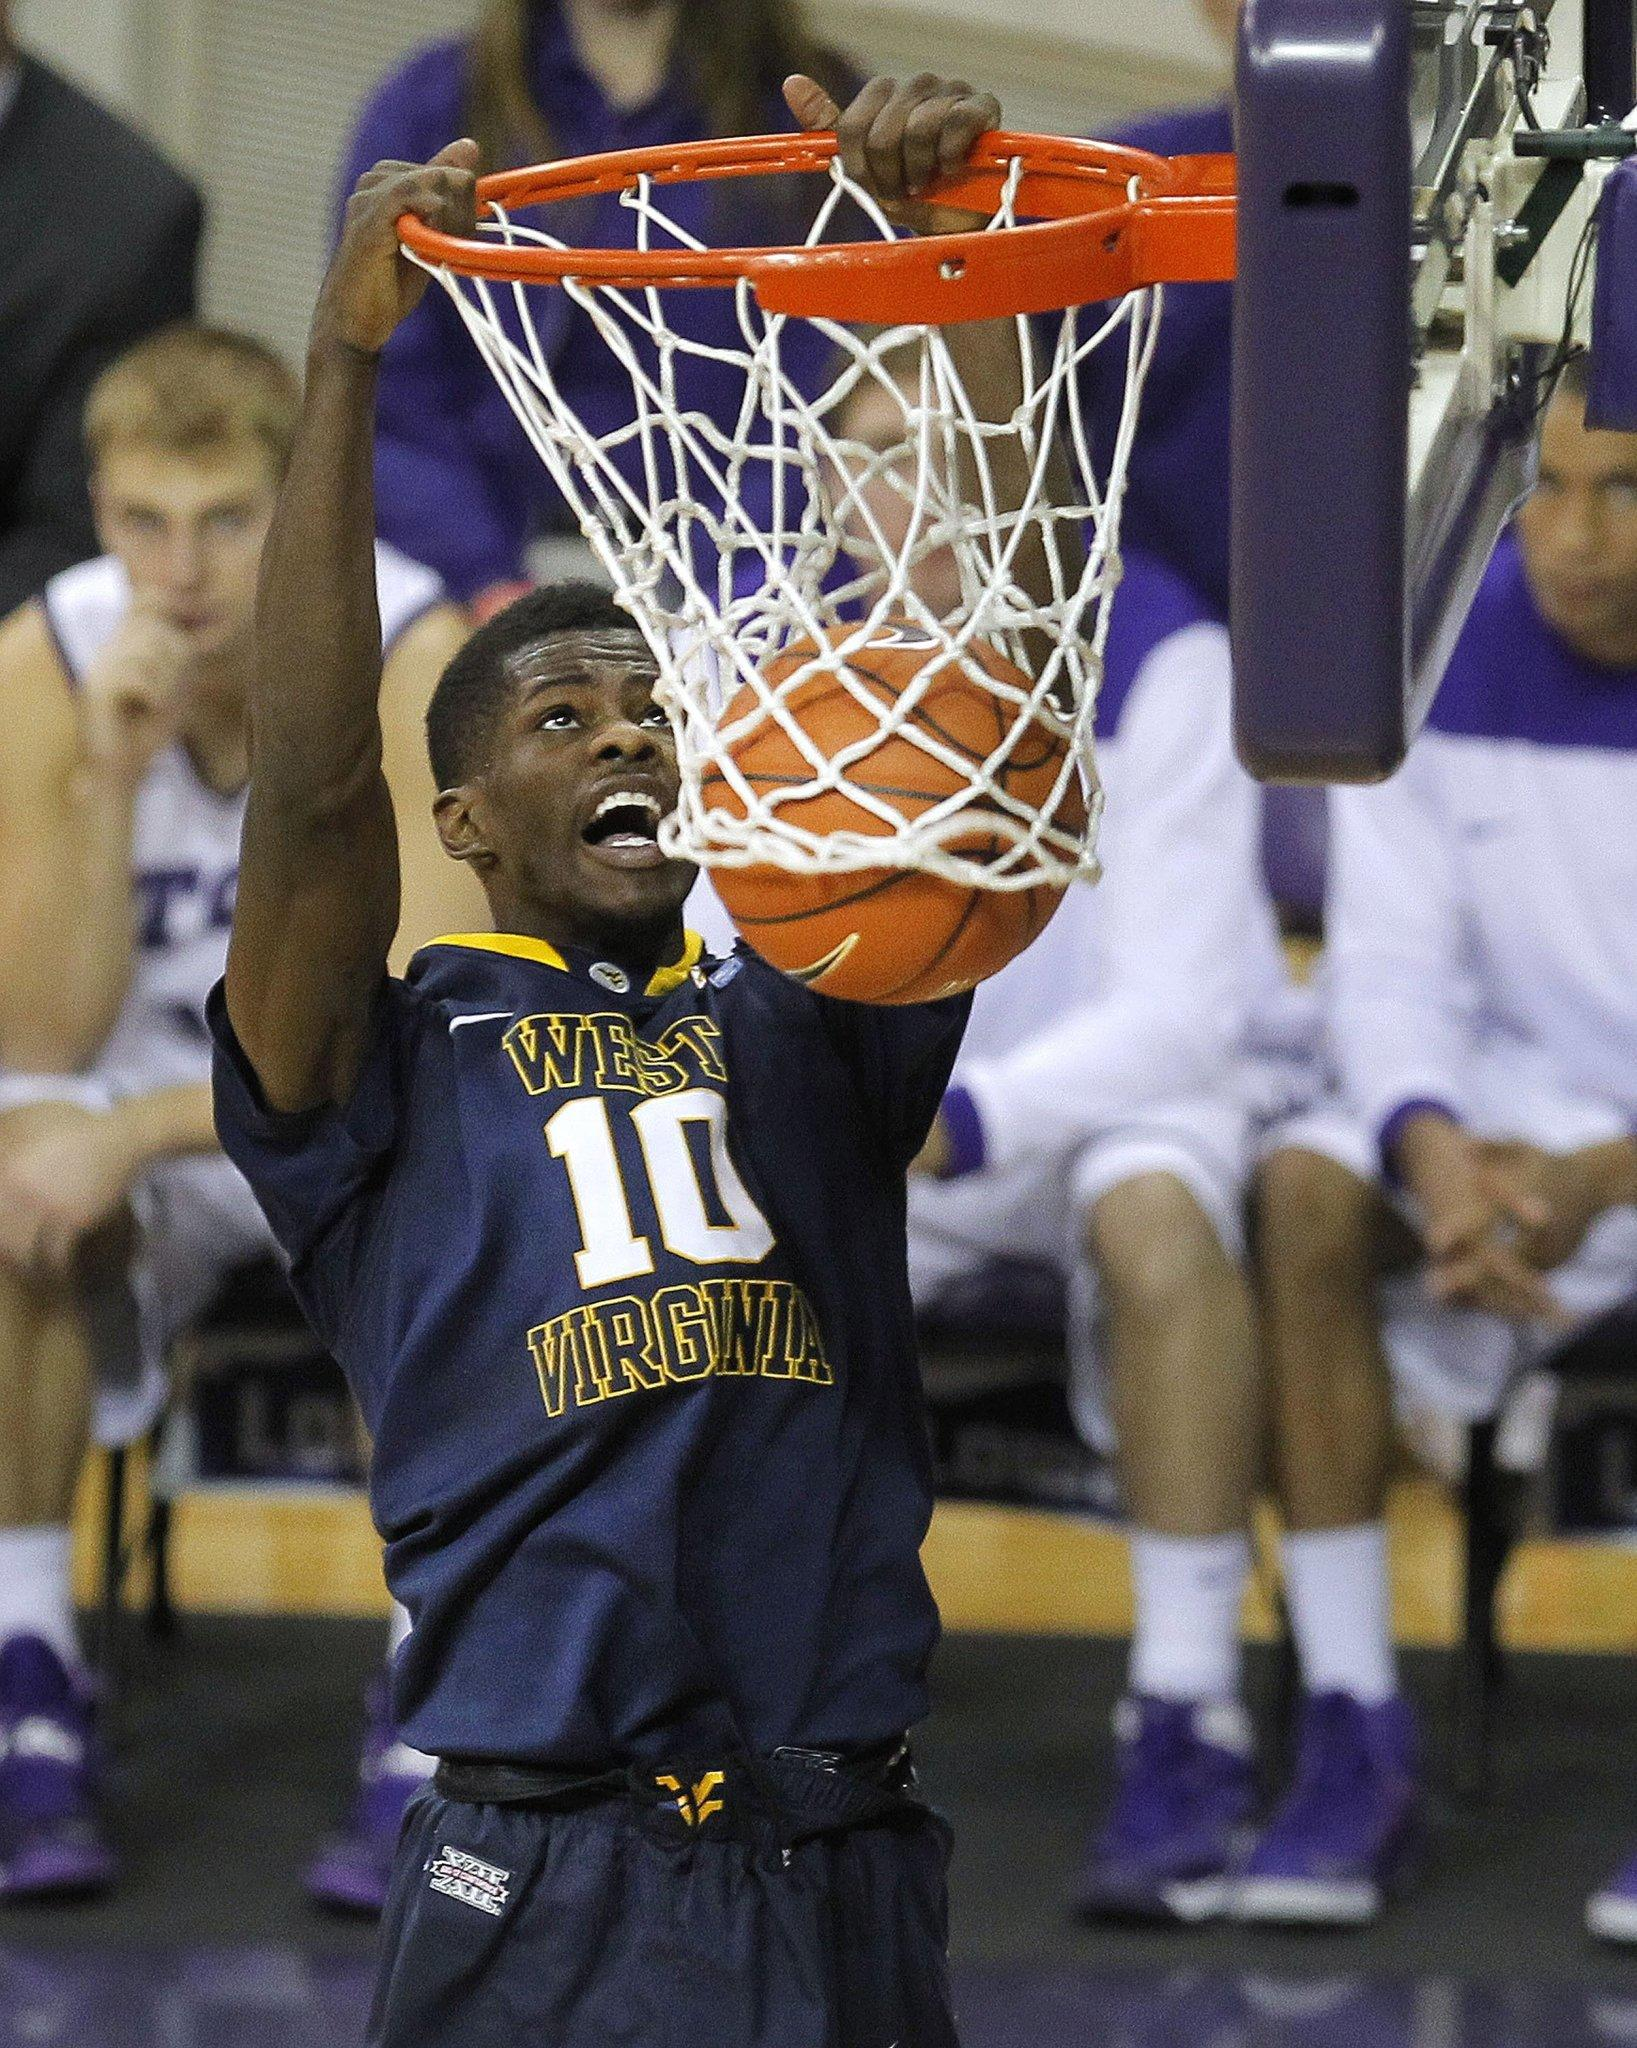 West Virginia guard Eron Harris dunks against Texas Christian in the first half in Fort Worth, Texas, Saturday, Jan. 4, 2013.